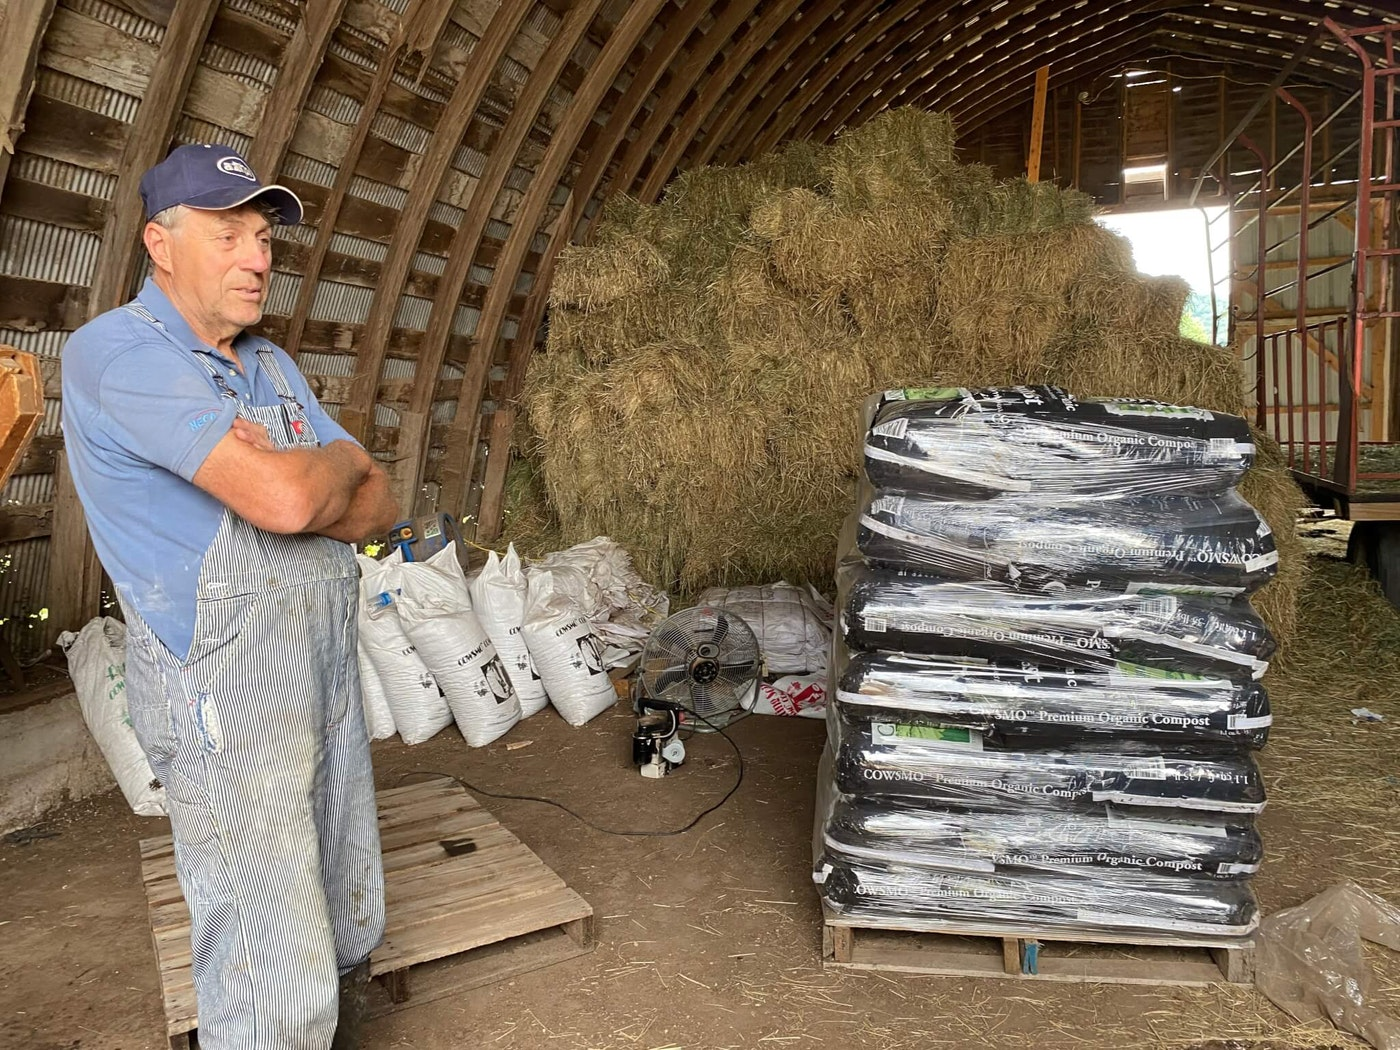 John Rosenow discusses the Cowsmo Compost business he operates and said doing that plus trying to operate his 800-acre dairy farm wouldn't be possible without the help of the 20 employees who work for him. (Photo by Julian Emerson)